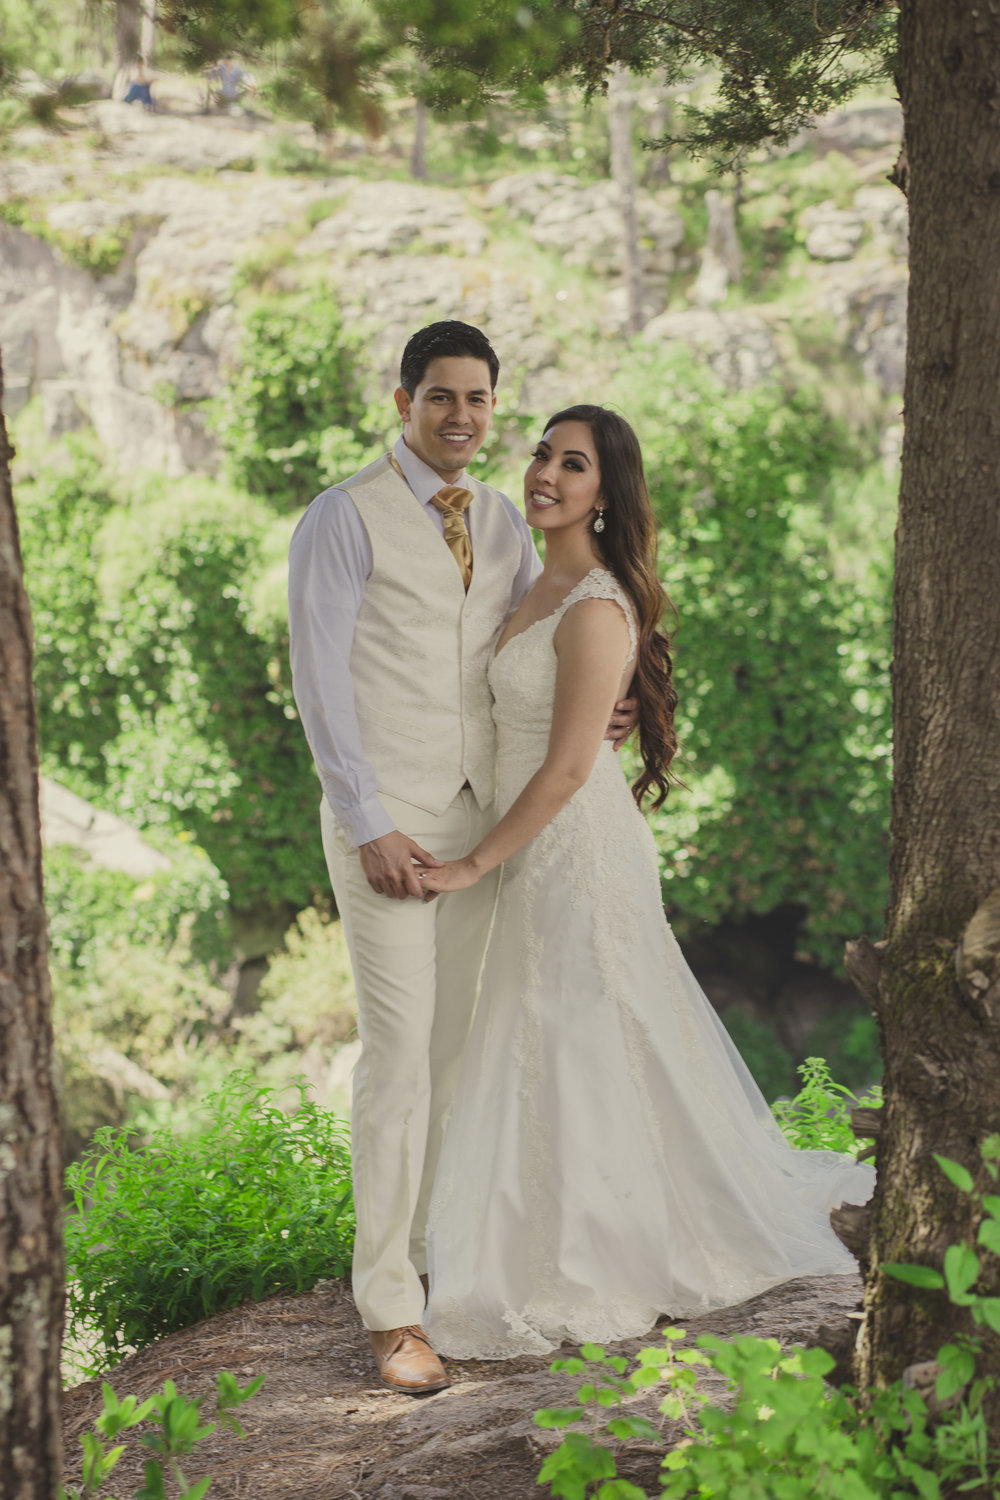 Sesion_trash_the_dress_boda_en_mexiquillo_durango_parque_11.jpg